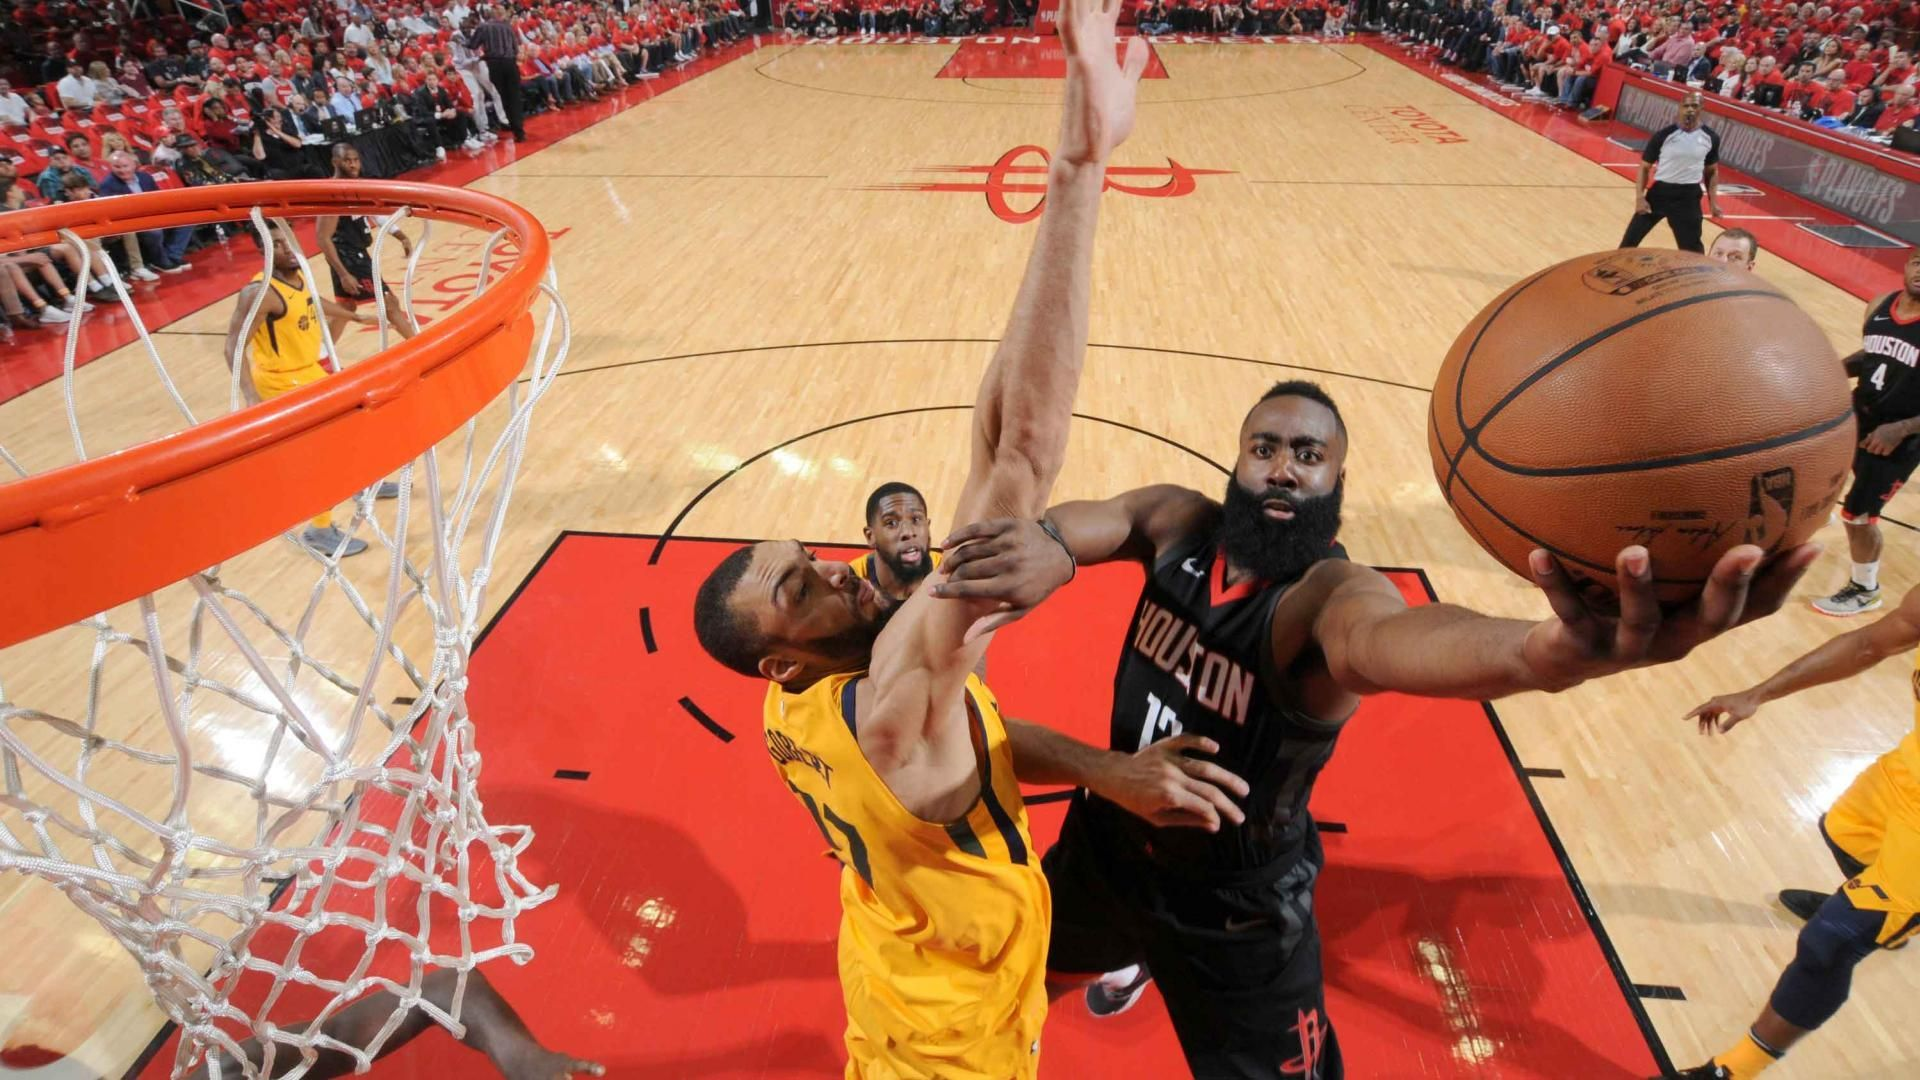 Rockets Game Https Rockets Game Com Live Stream Free Online How To Watch Houston Rockets Bask Houston Rockets Basketball Houston Rockets Rockets Basketball